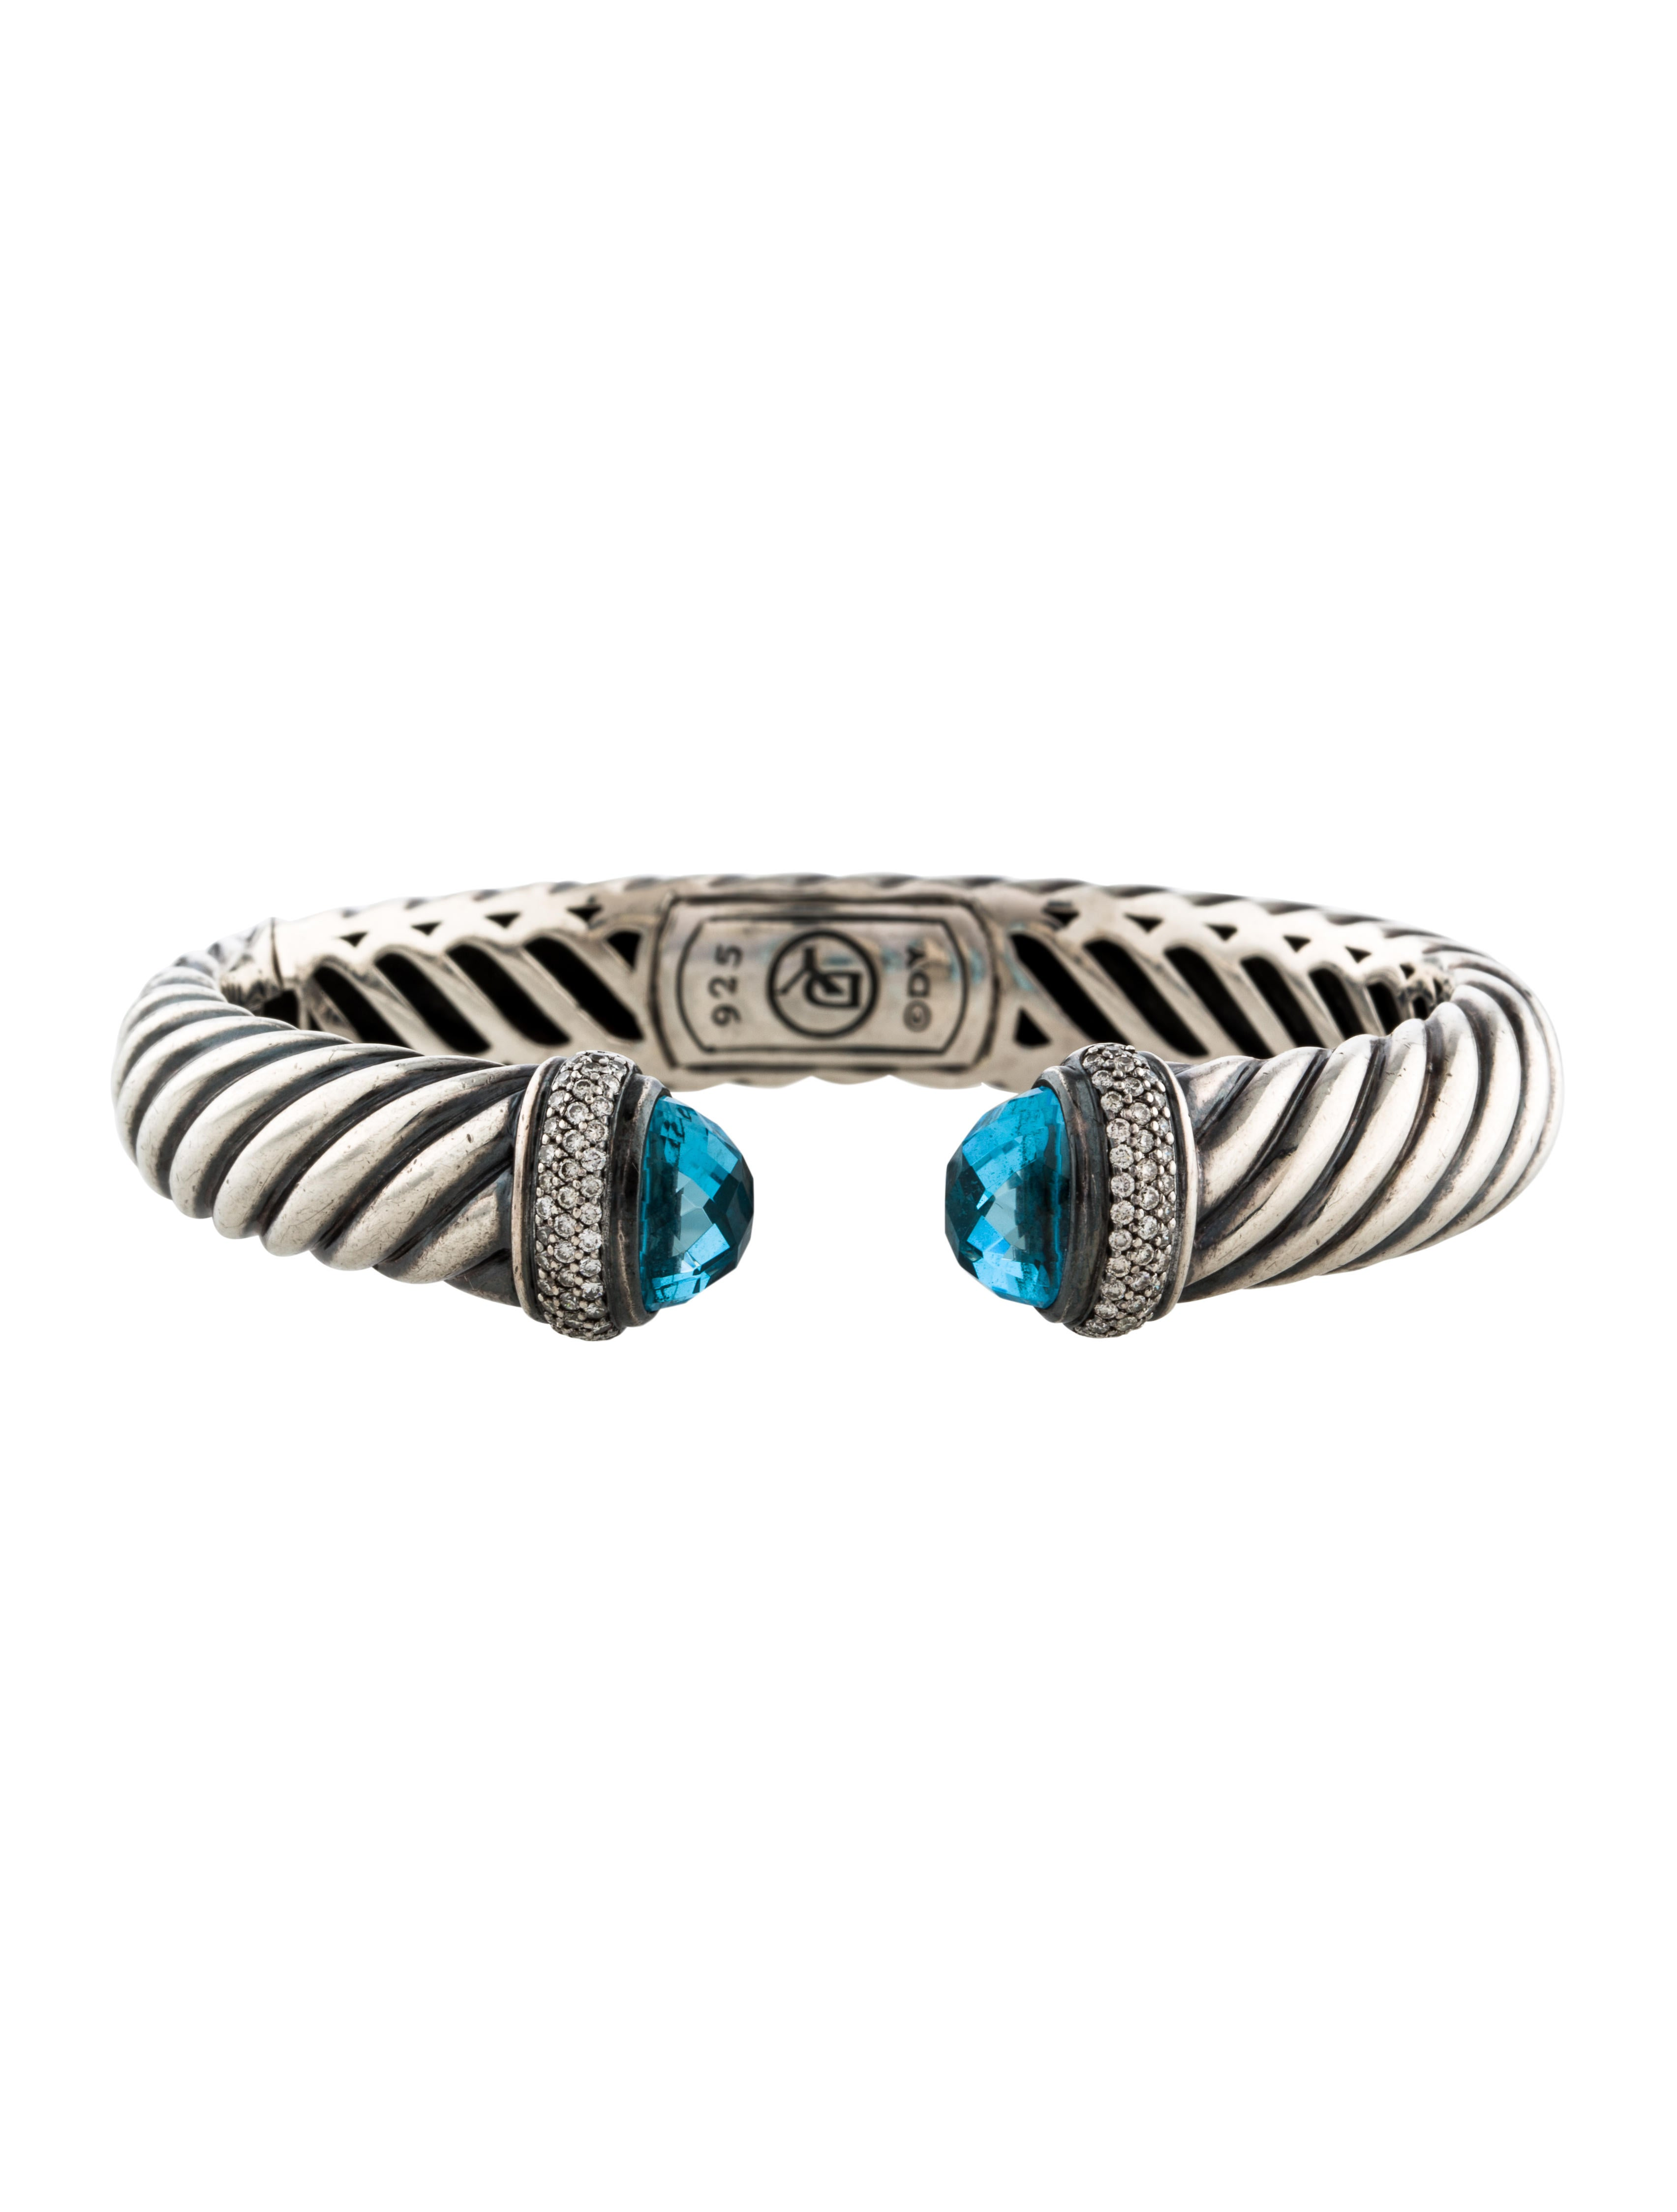 David yurman topaz diamond sculpted cable cuff bracelet for David yurman inspired bracelet cable